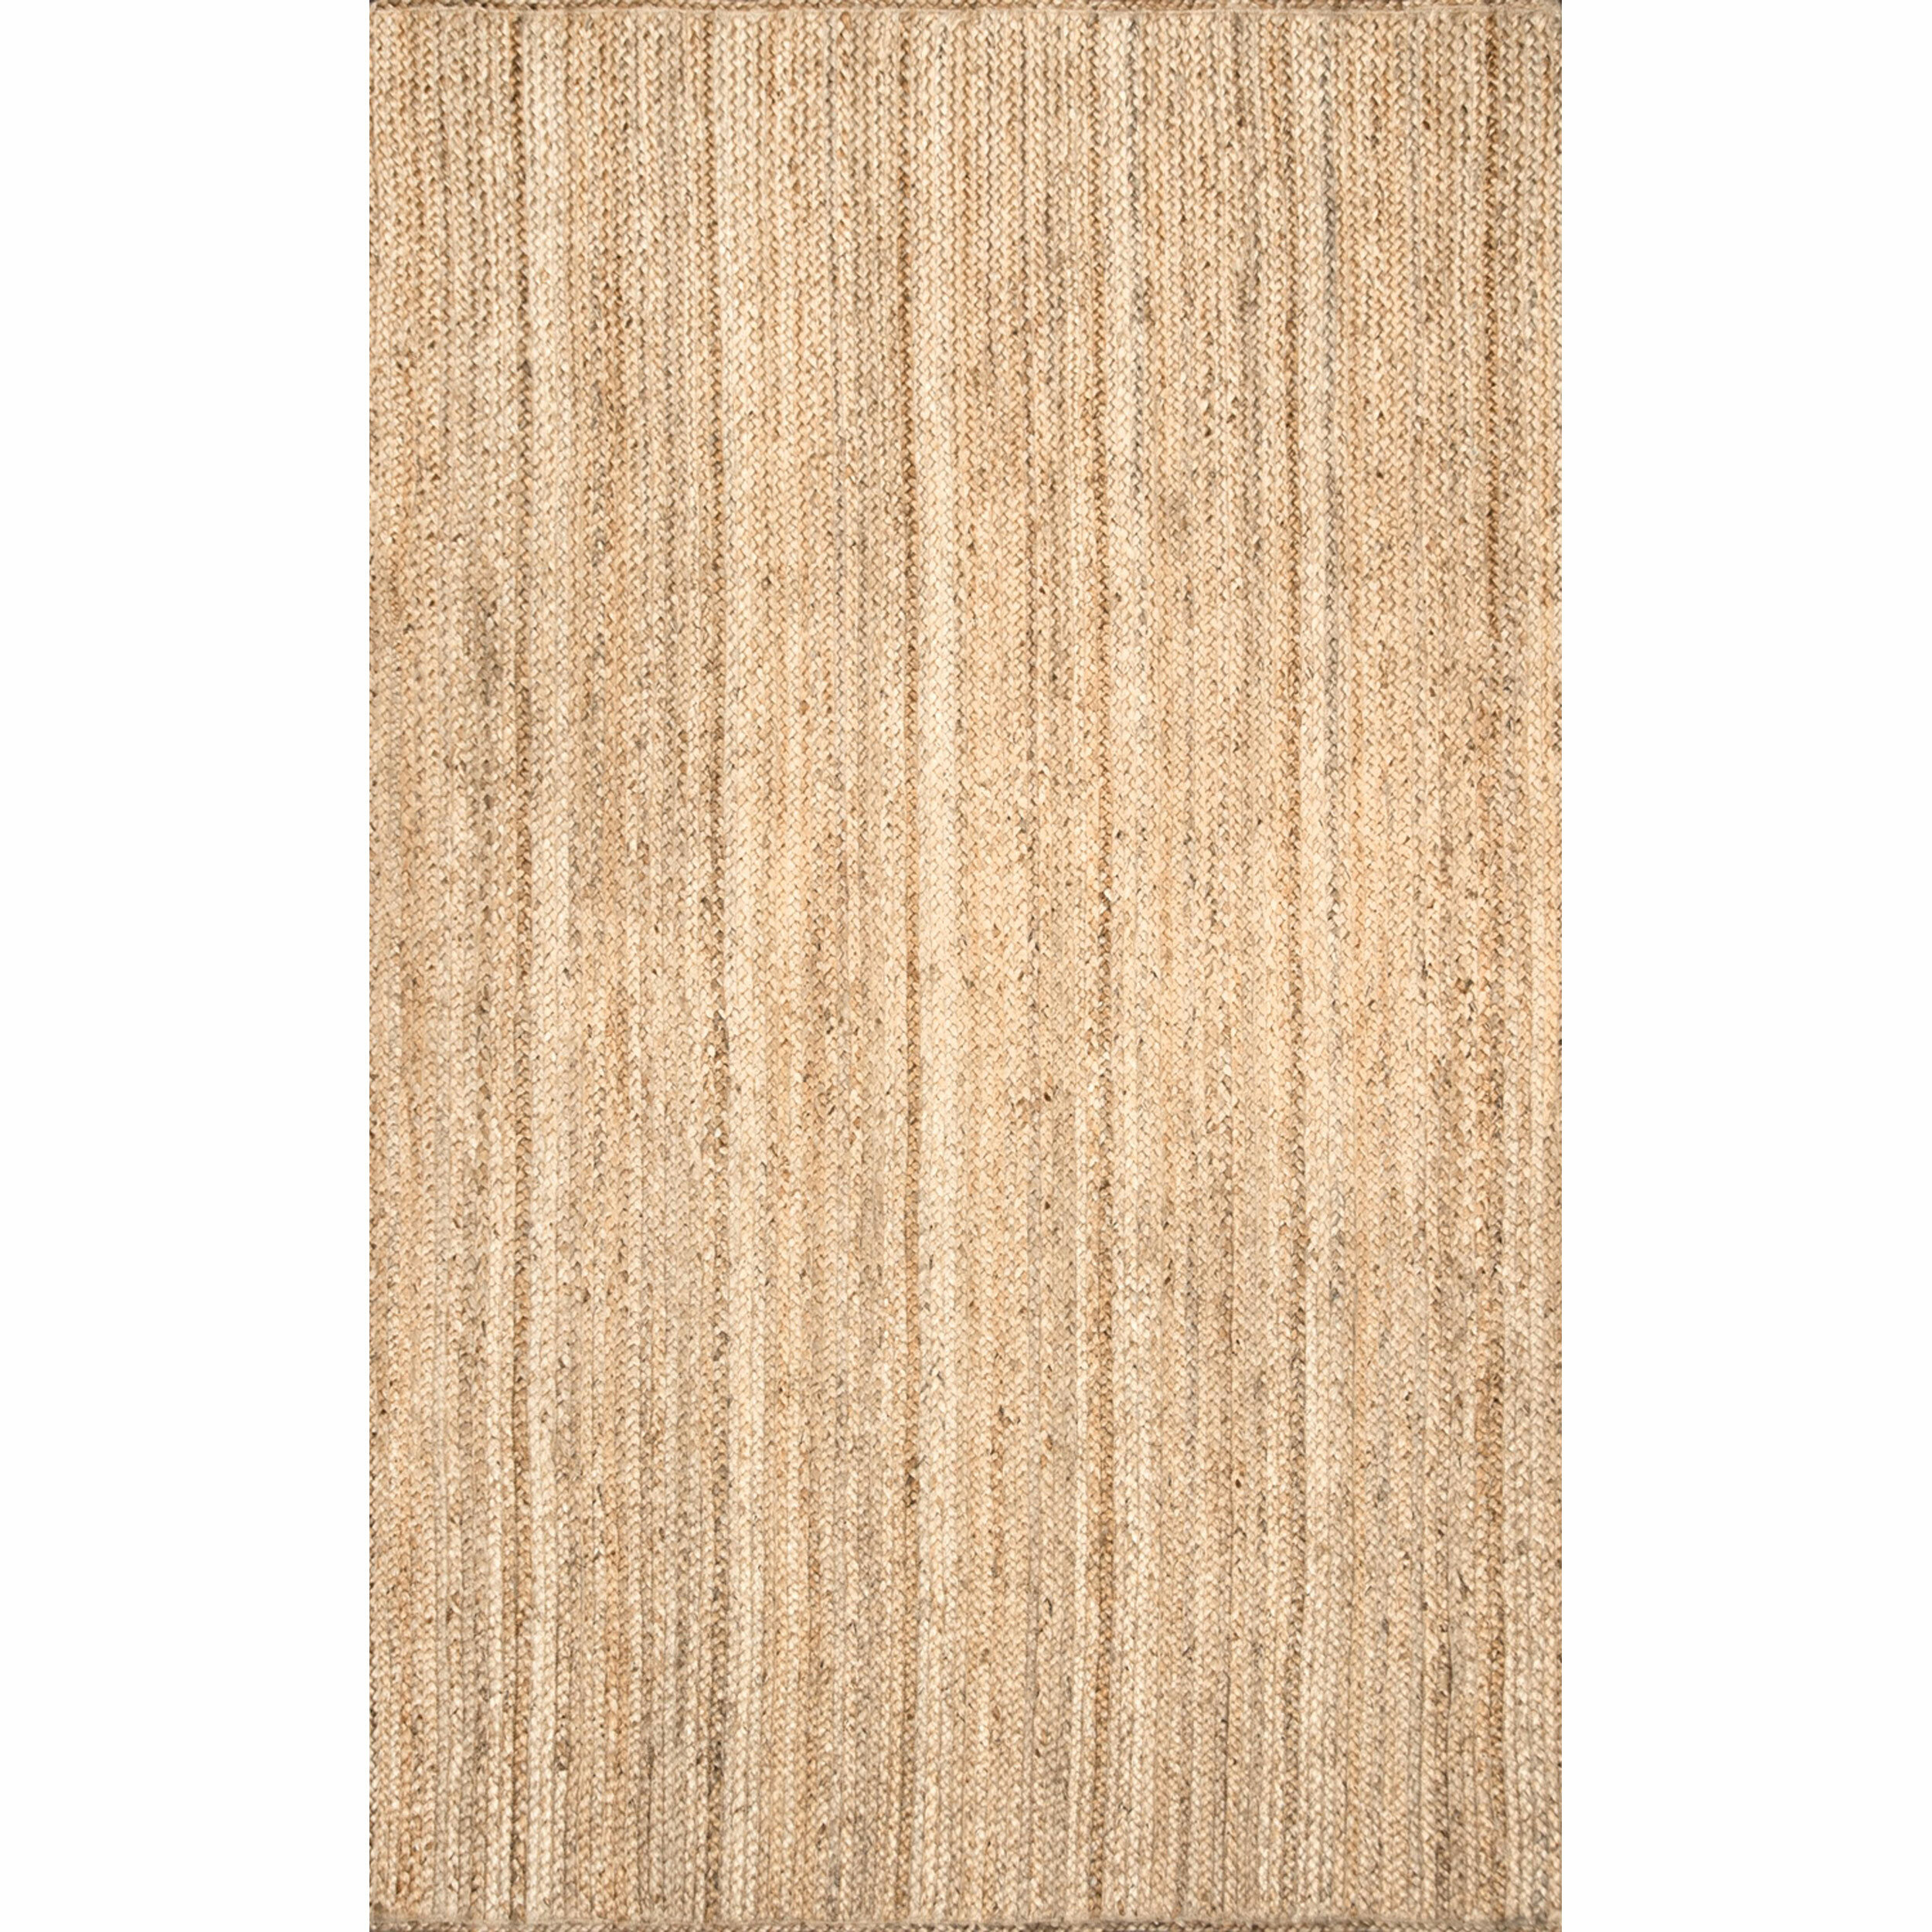 Jute Sisal Rugs Up To 60 Off